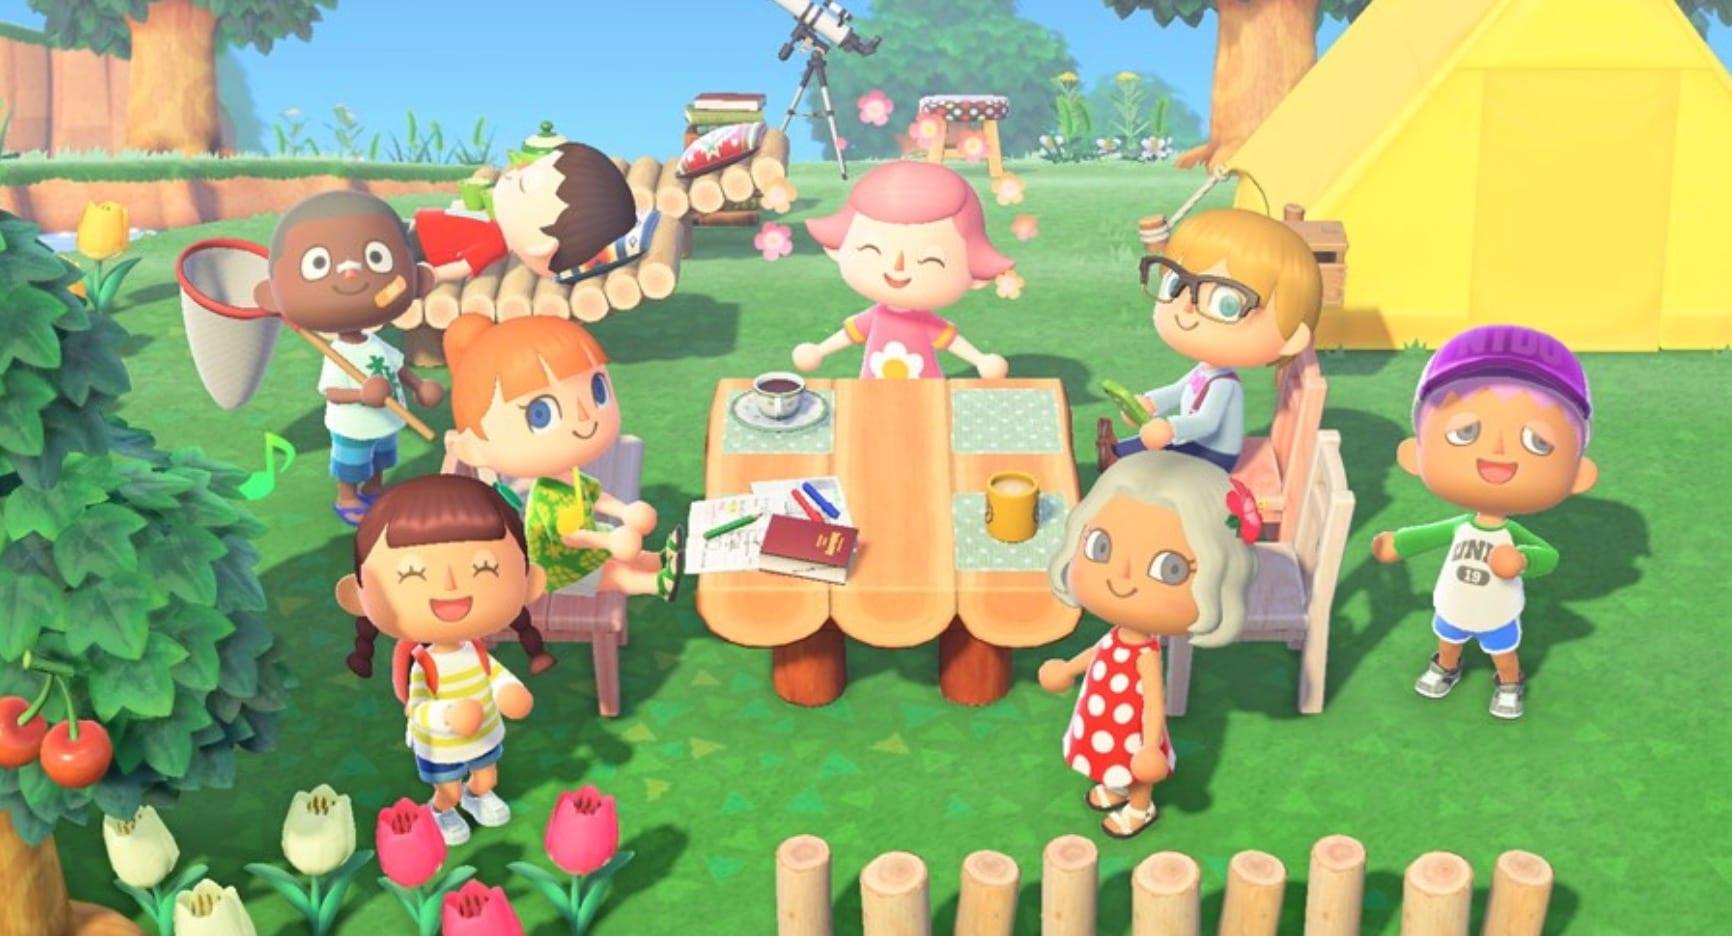 animal crossing new horizons, petition, release early